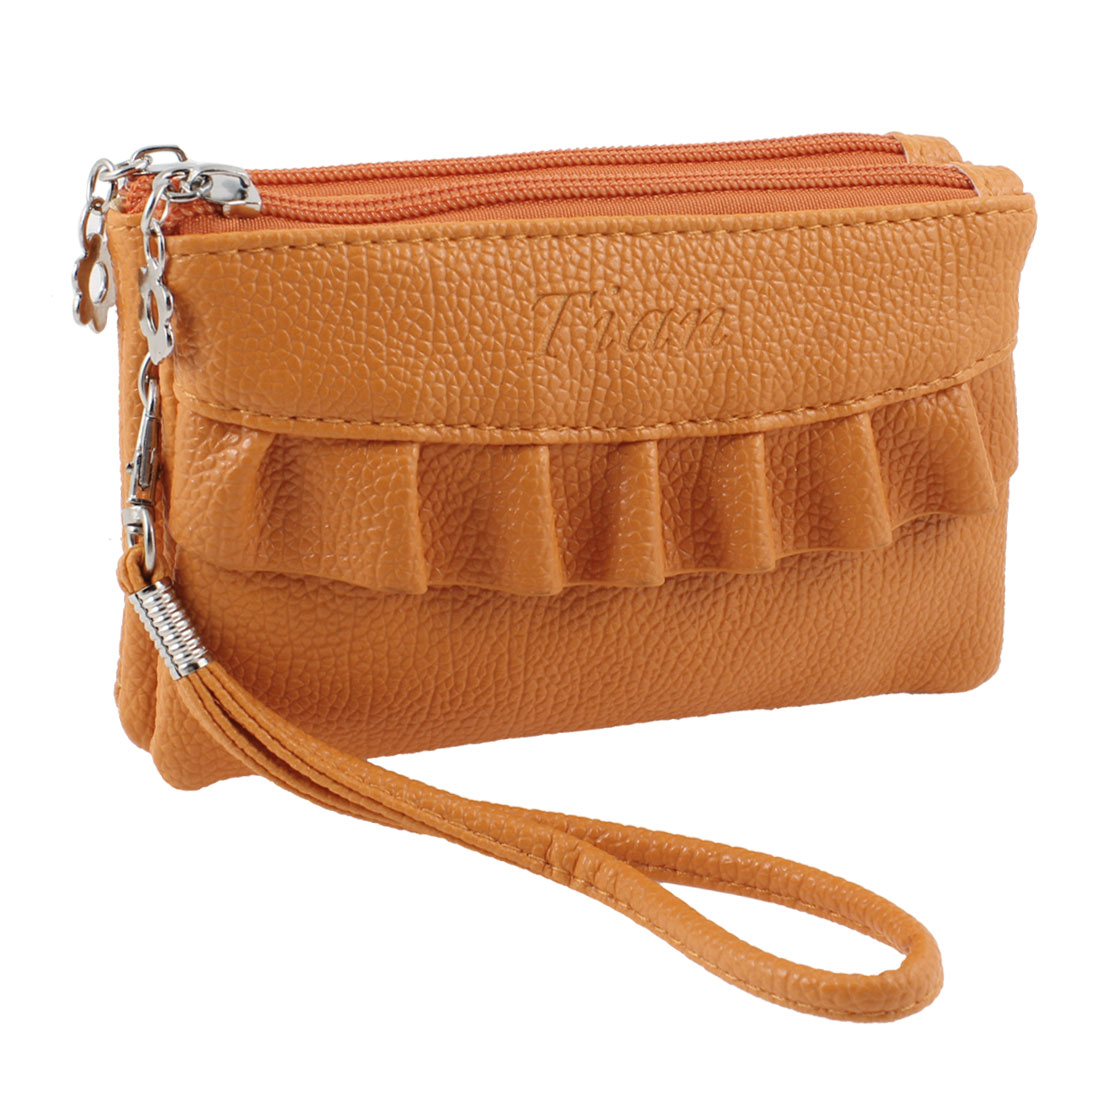 Orange Leechee Pattern 2 Compartments Faux Leather Zip Up Purse Wallet w Strap